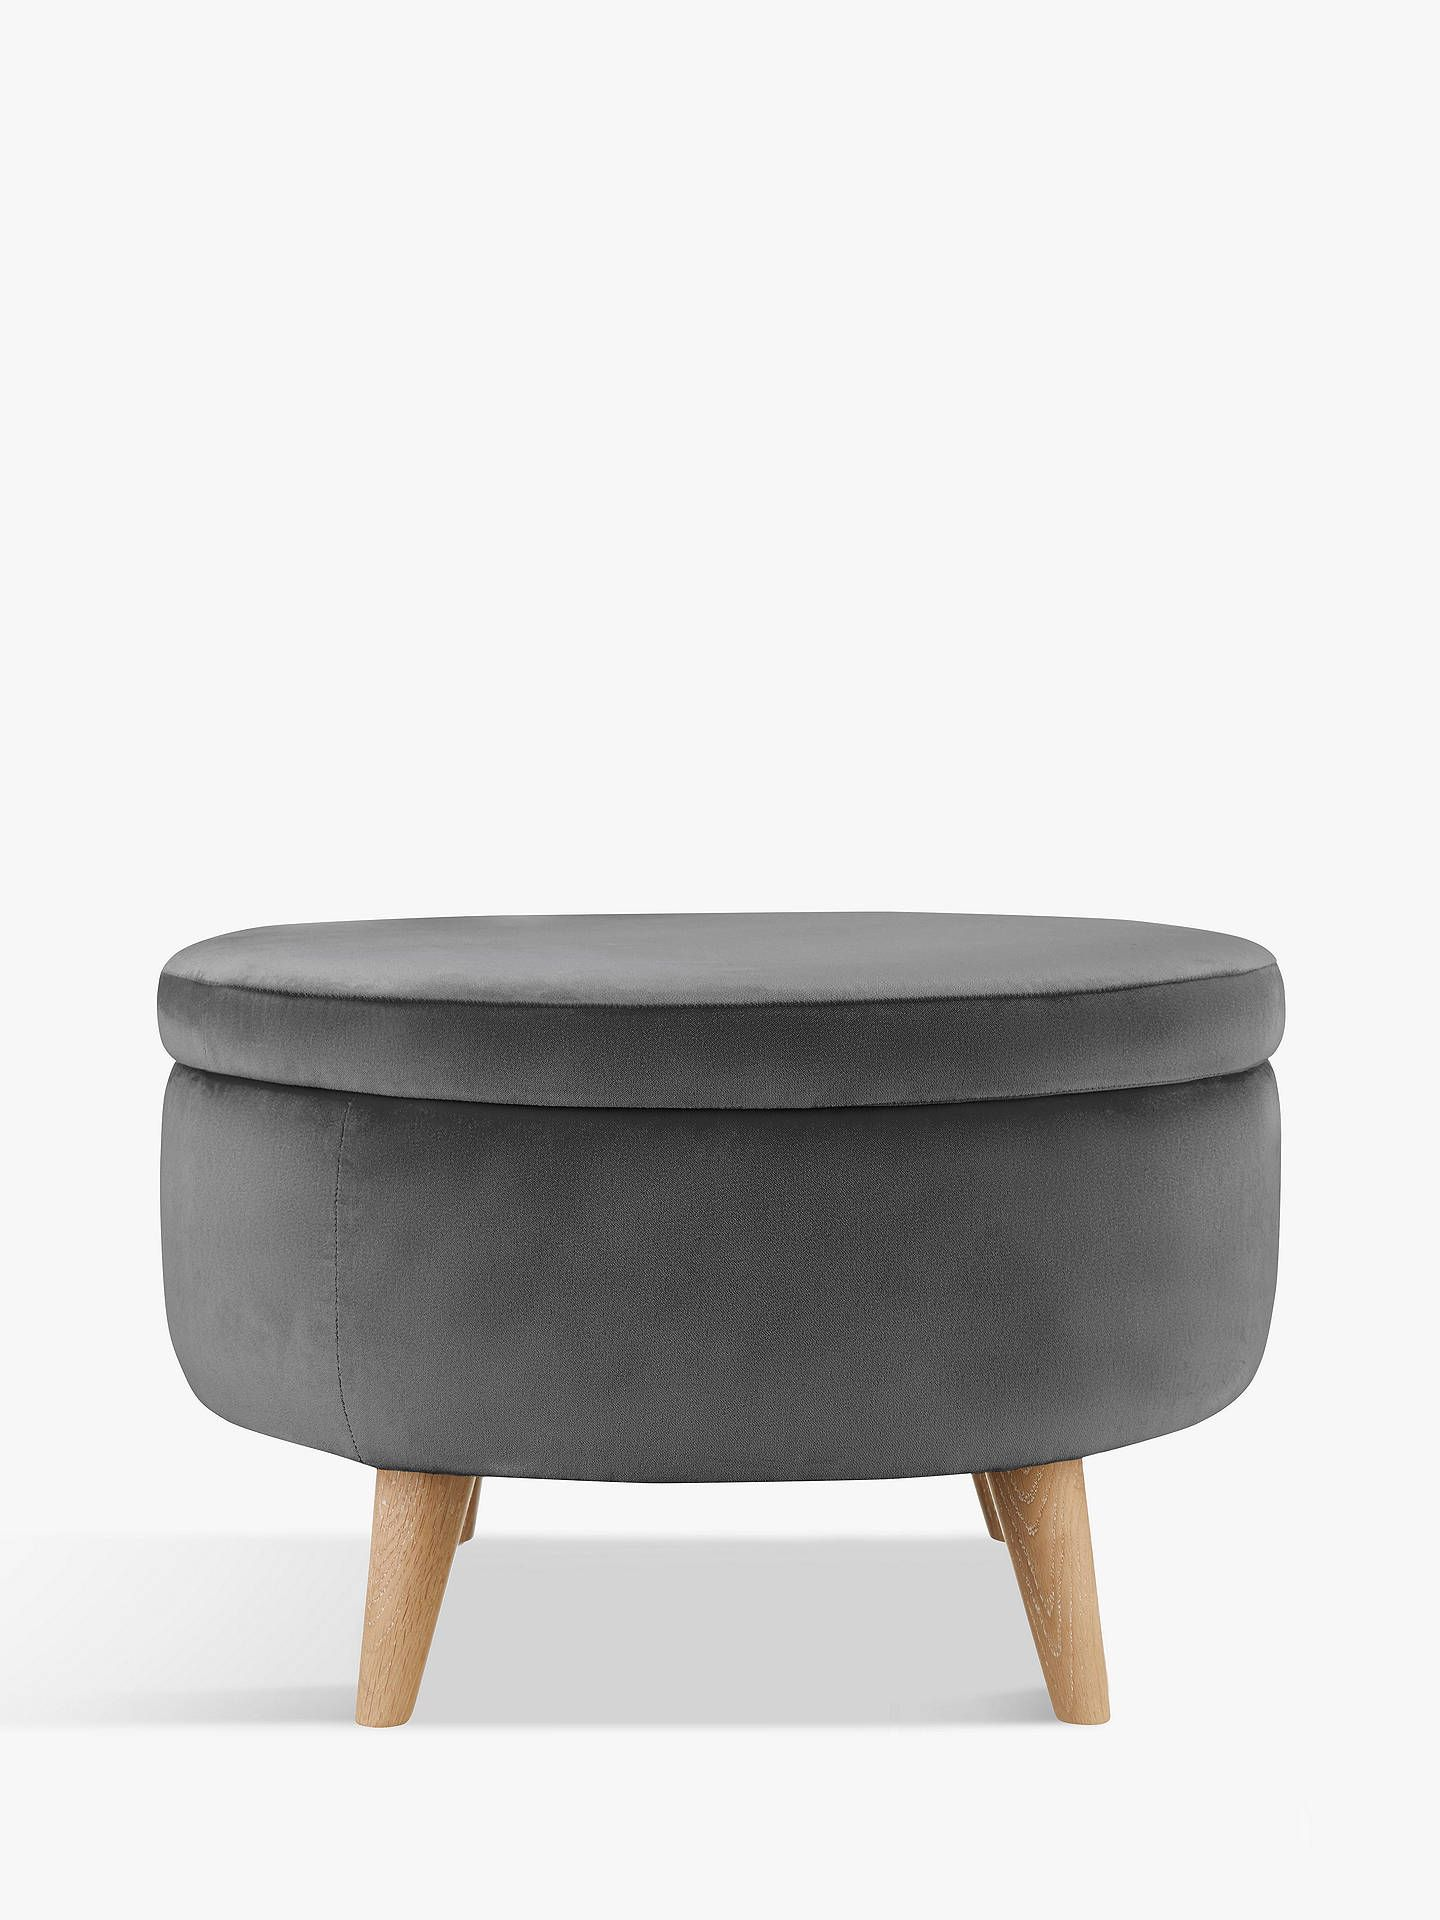 Fondue Footstool By Loaf At John Lewis Clever Velvet Smokey Grey